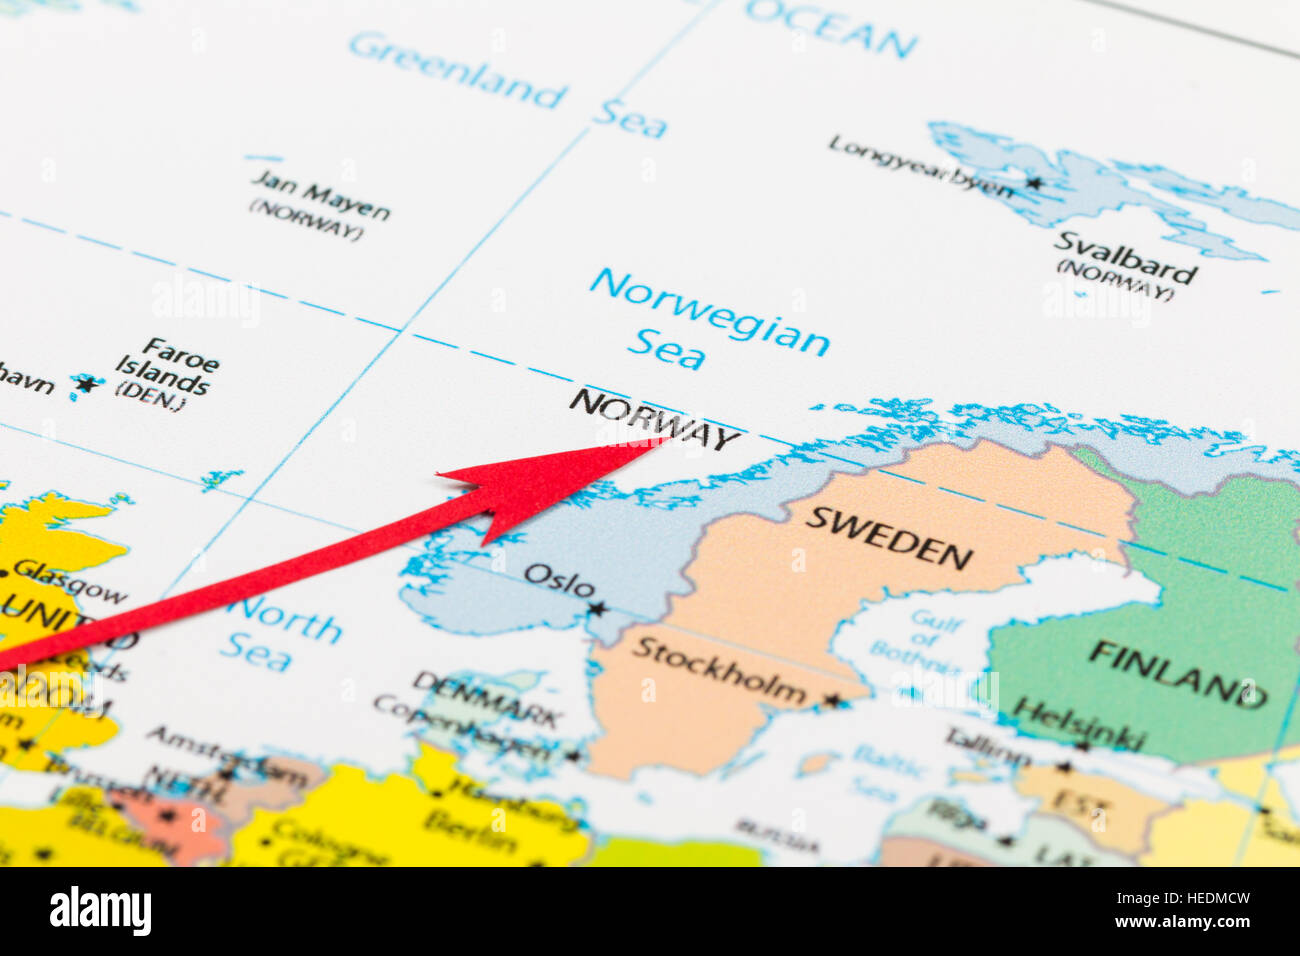 Red Arrow Pointing Norway On The Map Of Europe Continent Stock - Norway map of europe